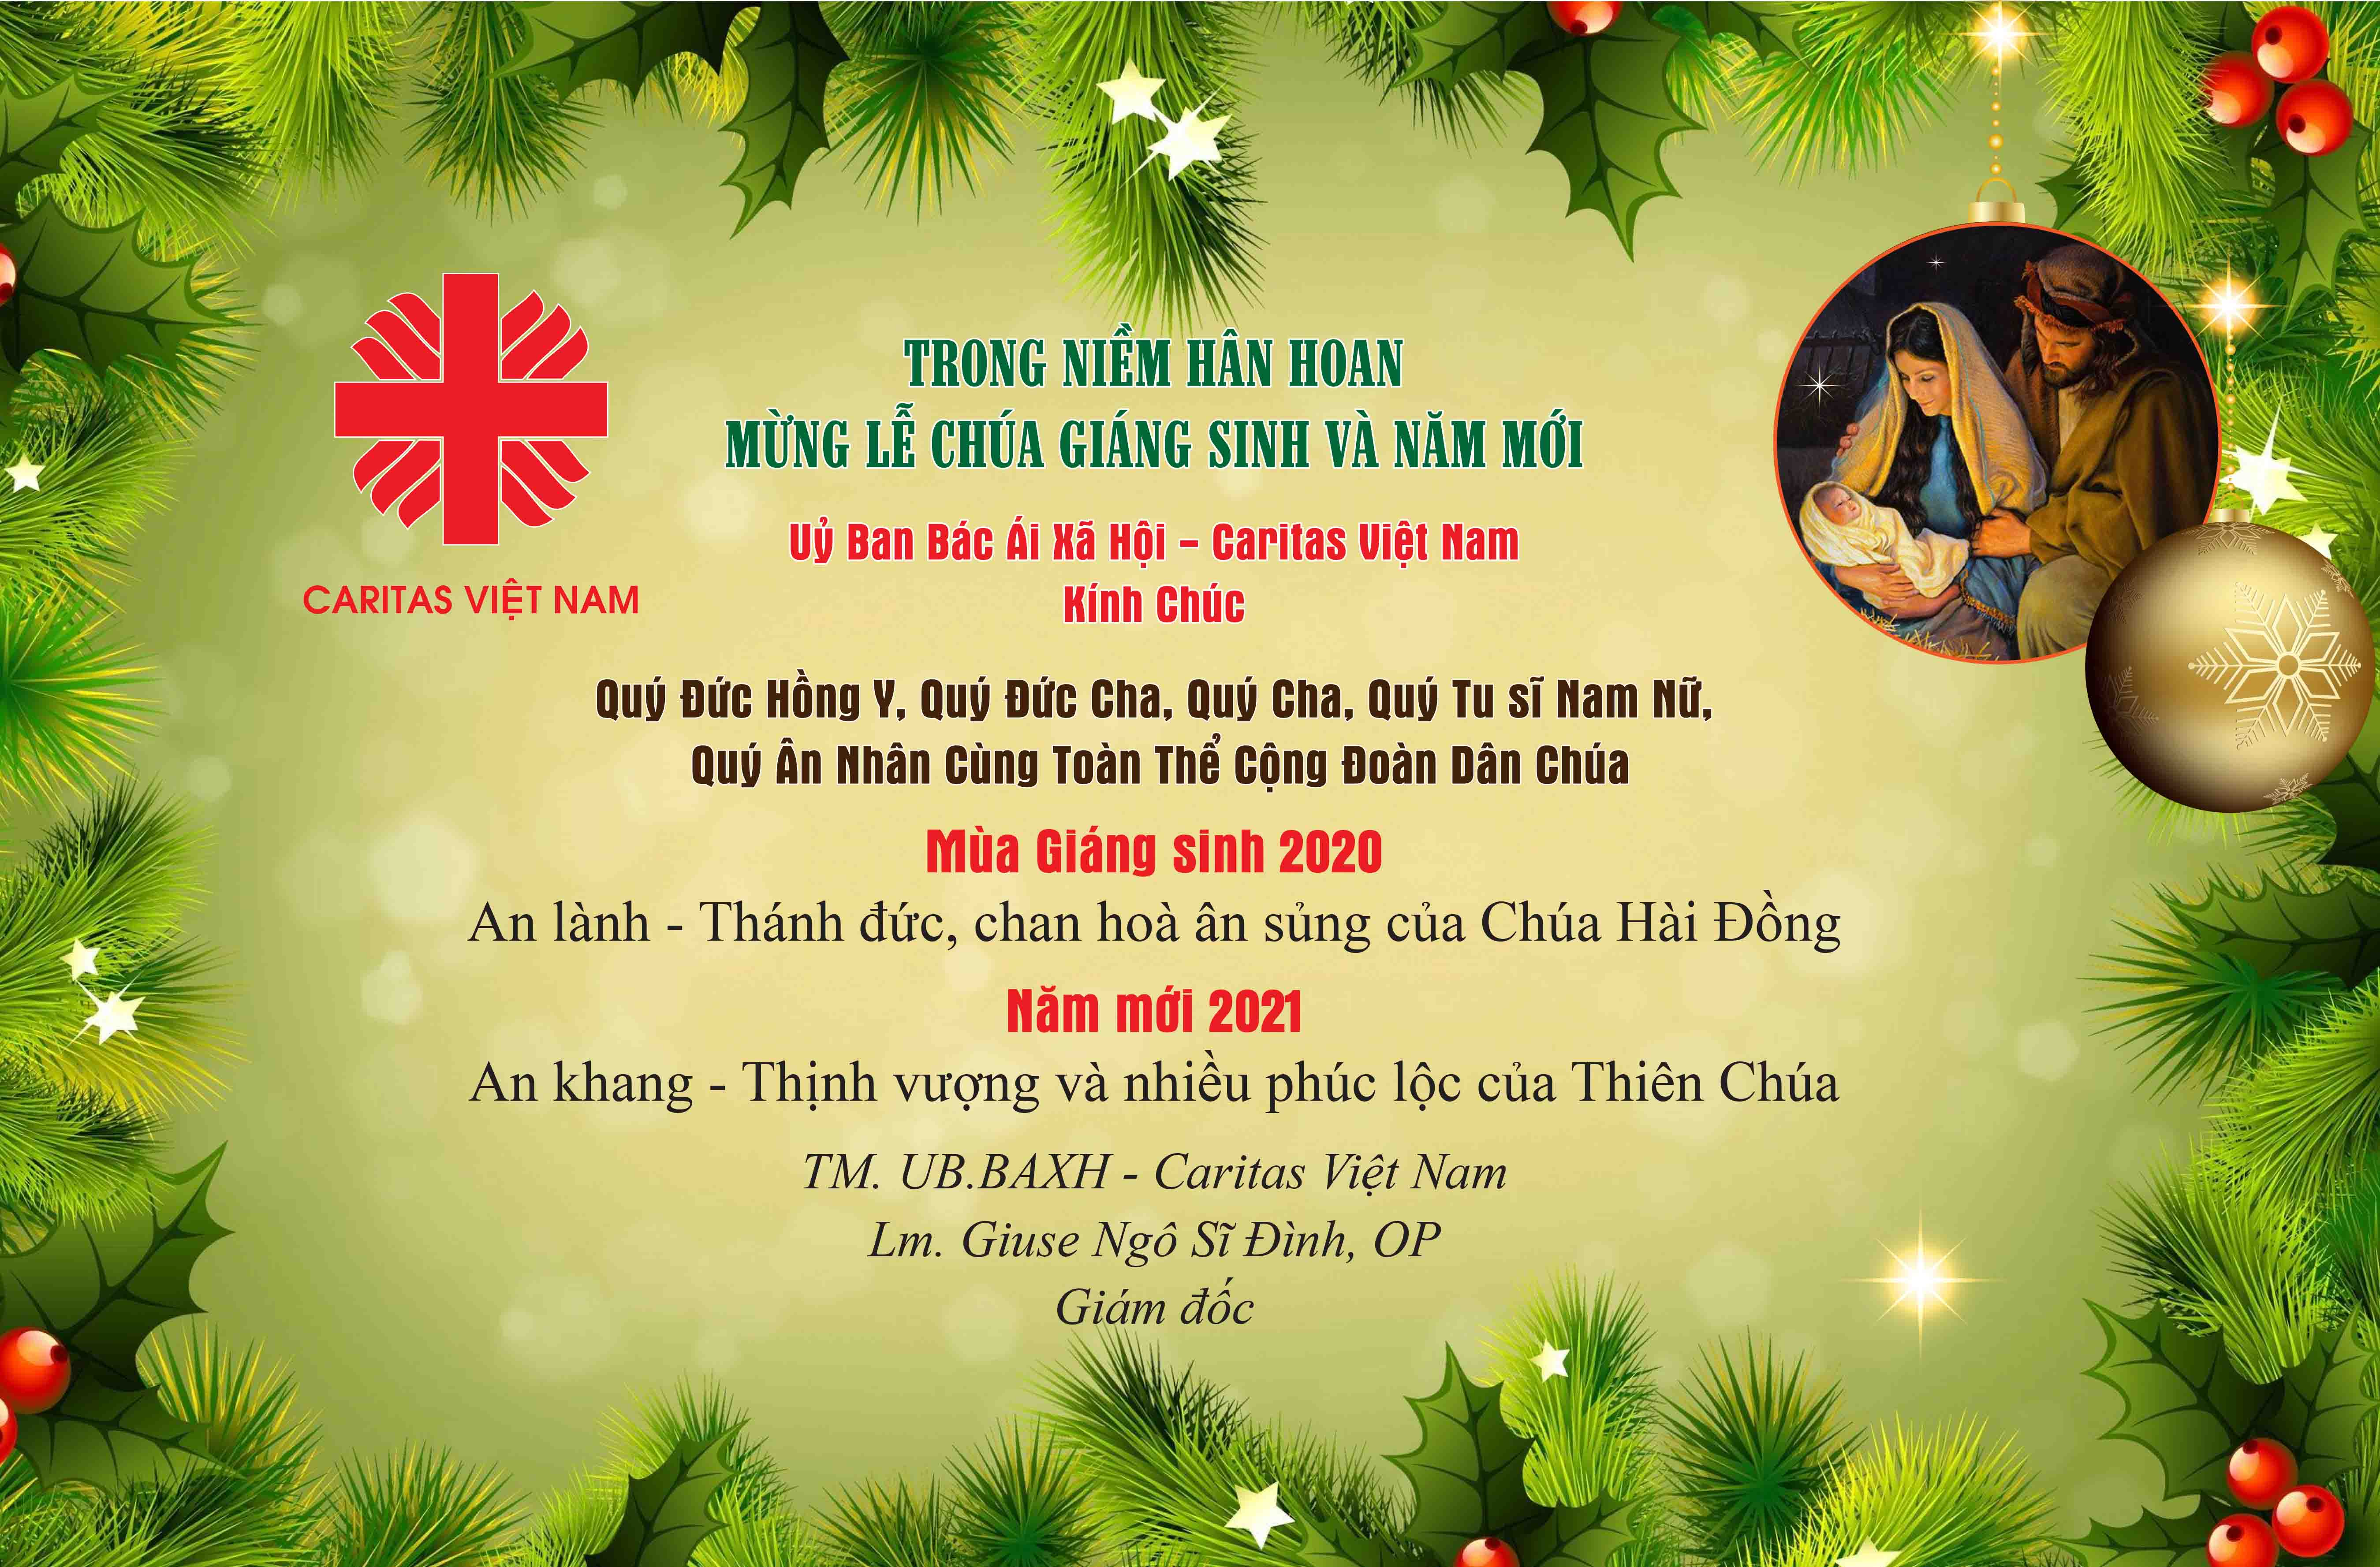 Merry Christmas from Caritas Vietnam